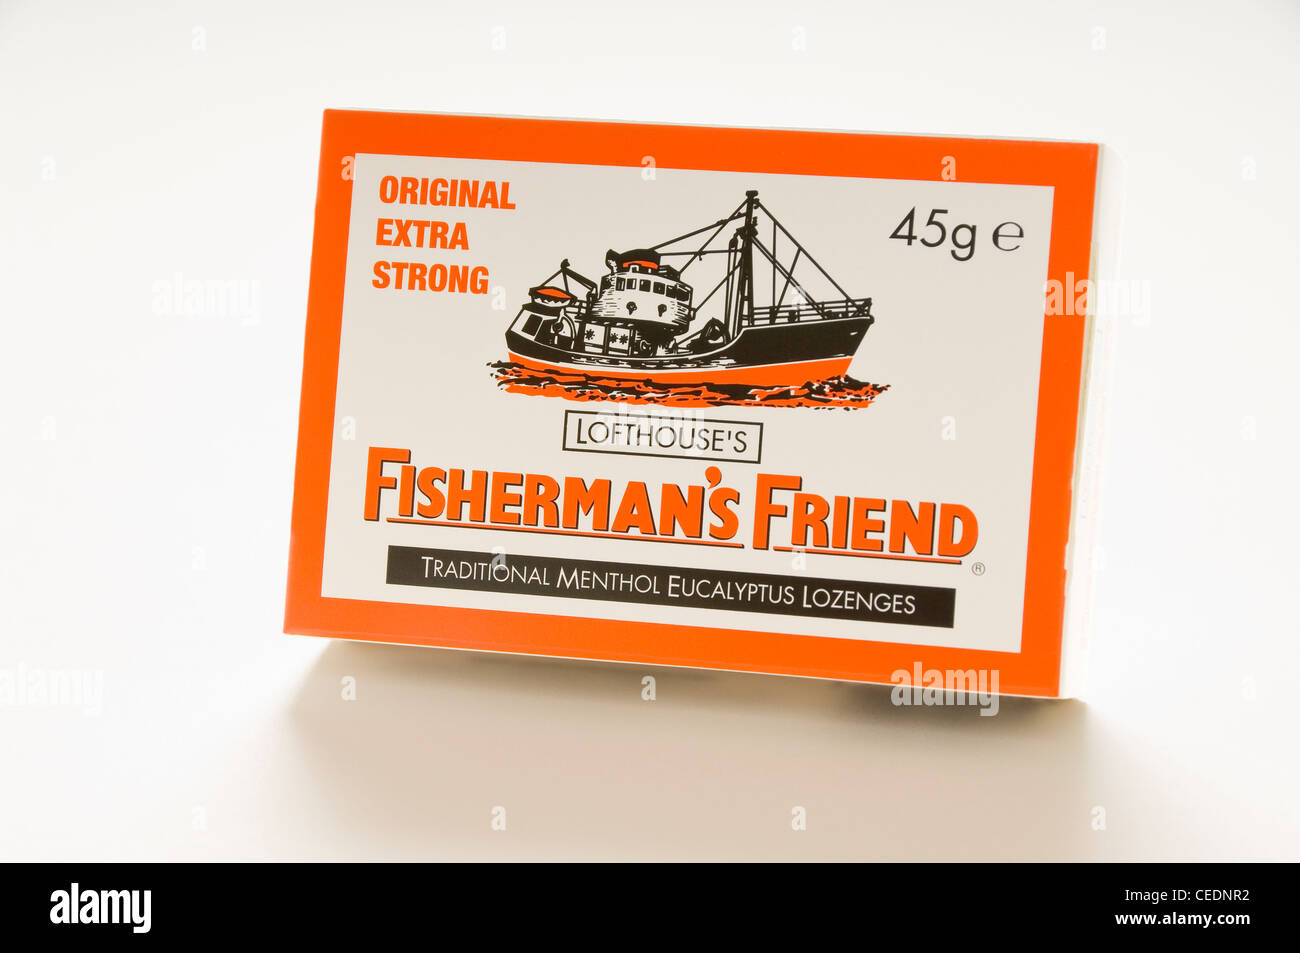 Box of Fisherman's Friend lozenges - Stock Image